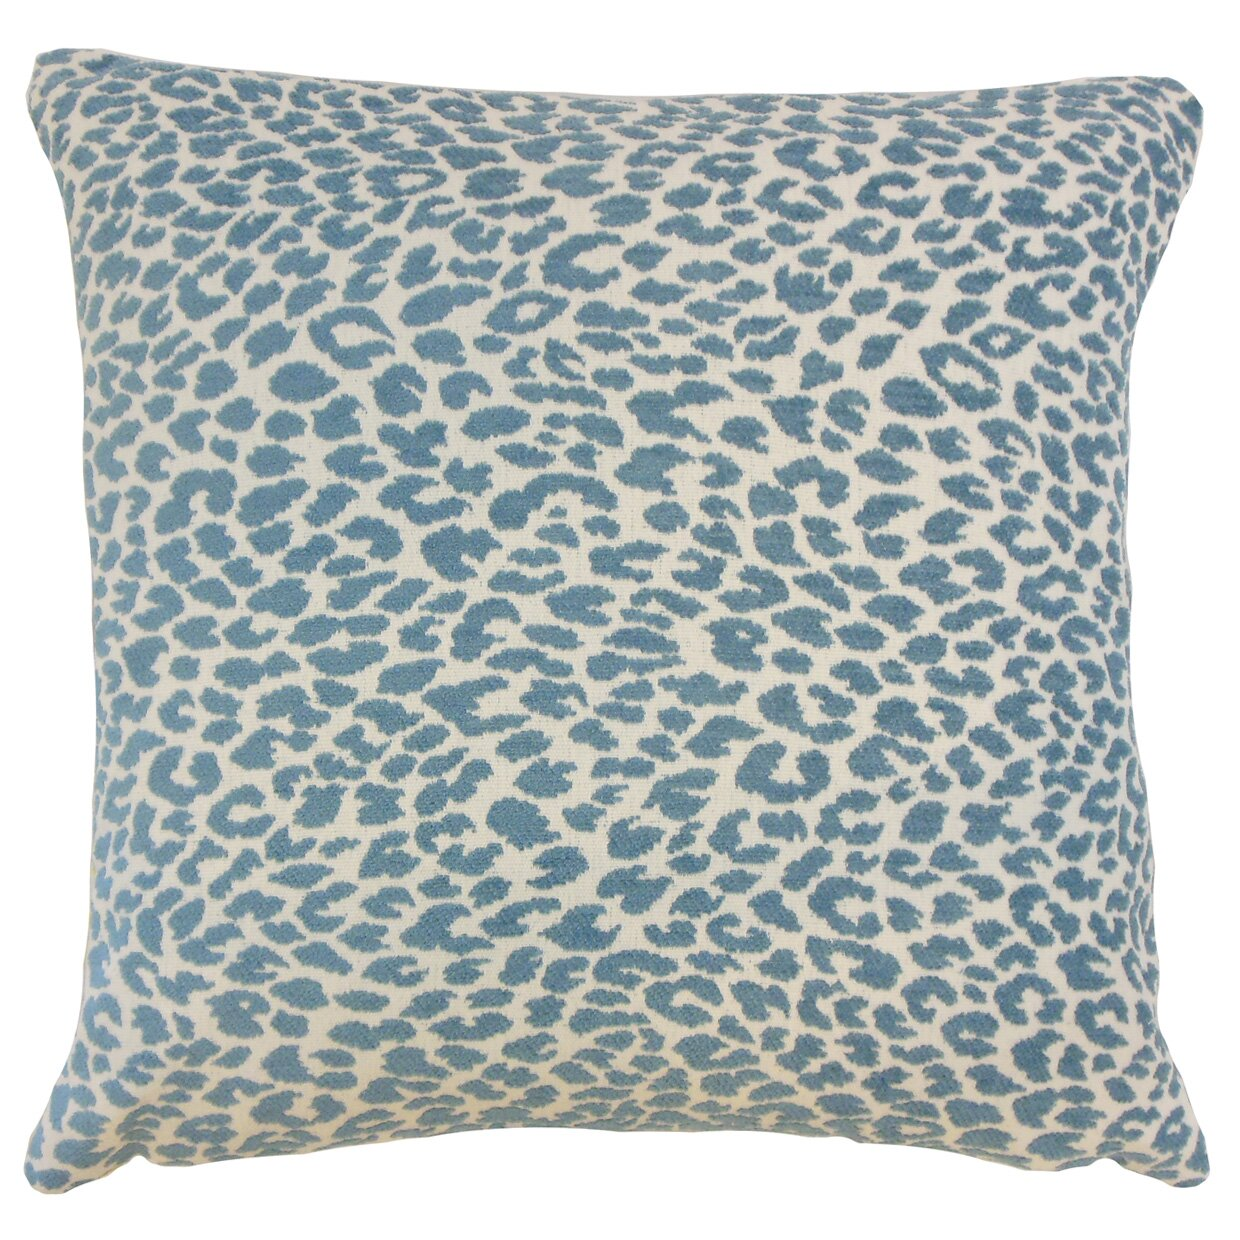 The Pillow Collection Pesach Animal Print Throw Pillow & Reviews Wayfair